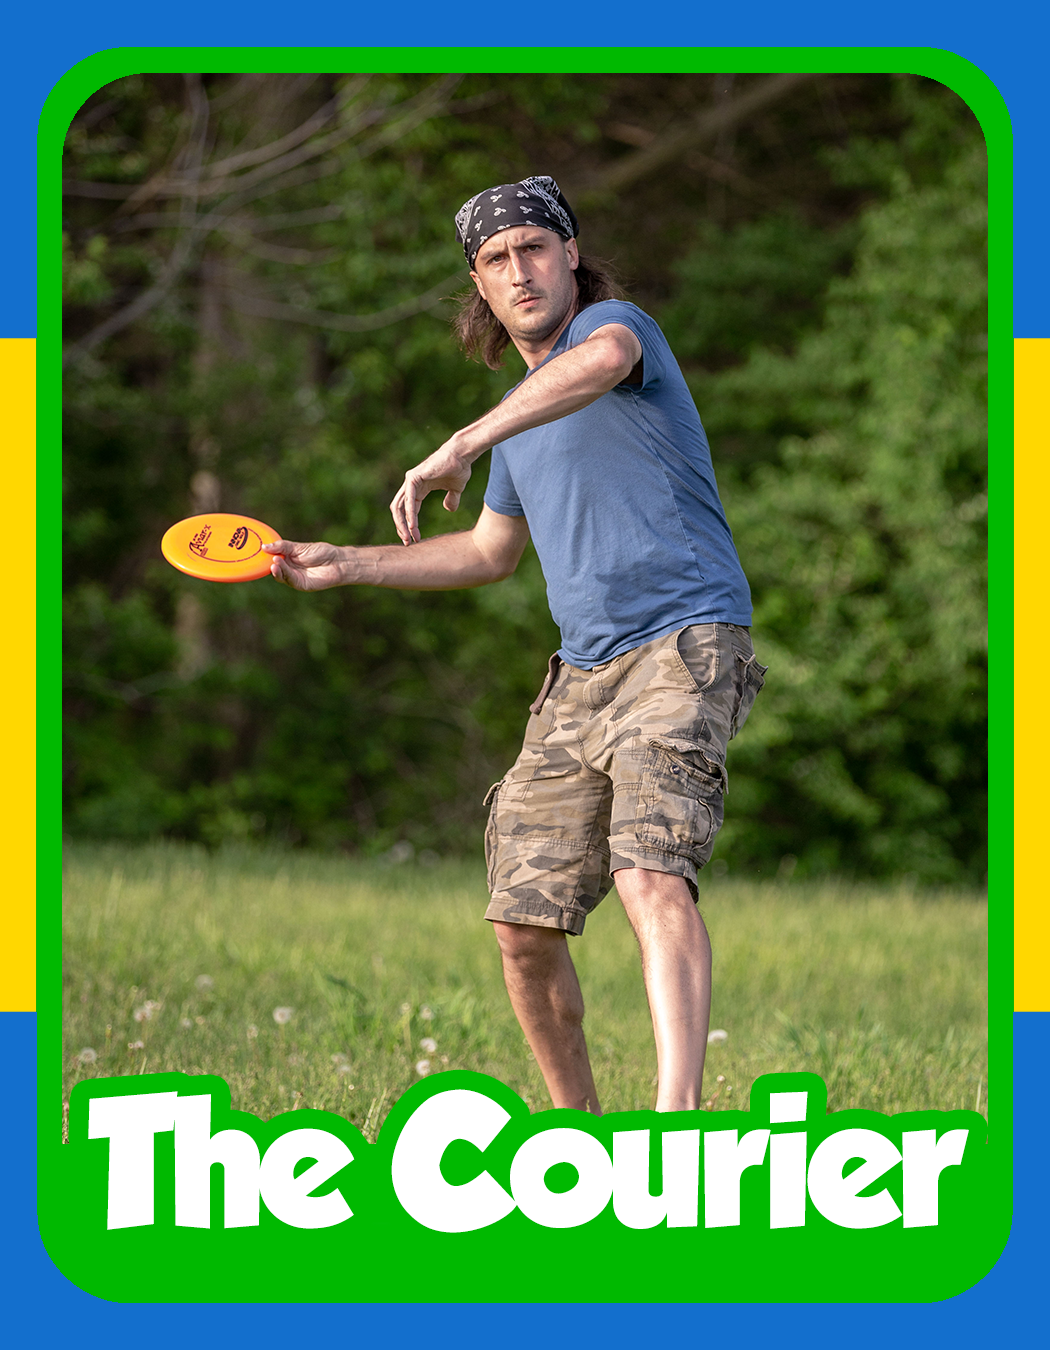 Pete Stuttgen - A man who makes his living with timely deliveries, The Courier's only thought is beating his opponents to his destination. His determination allows him to ignore the competition and play free of any pressure from the other players. Even the Commissioner of the league has fallen victim to Pete's hunger for victories (numerous times). Although he relies heavily on his forehand, don't be fooled, a course has yet to keep the Courier from making his delivery and besting all competitors in the field.